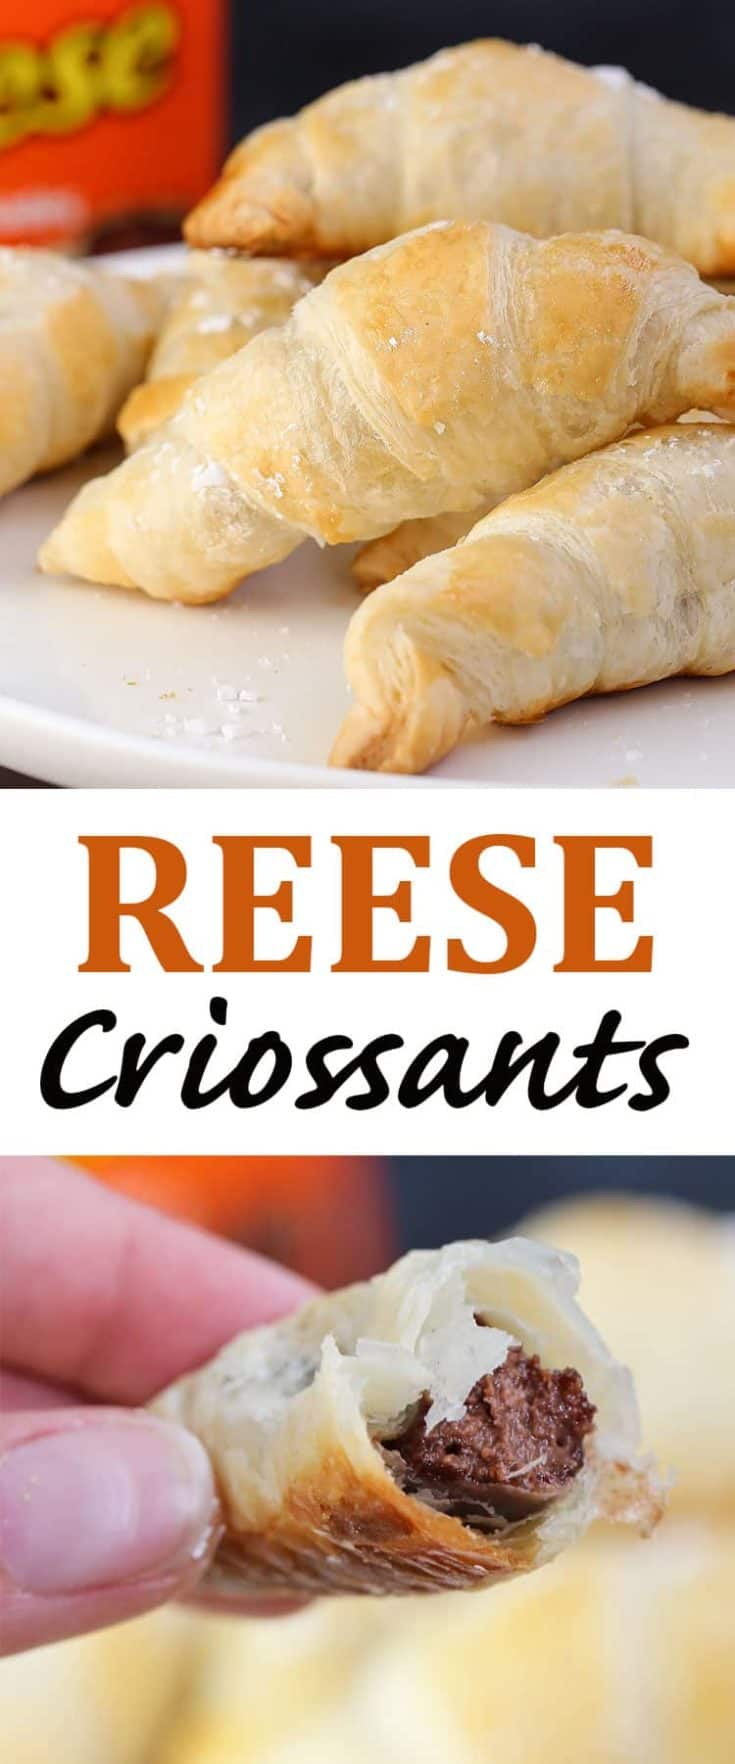 These flaky and delicious REESE Croissants are so very simple to make, and actually take only 3 ingredients for this yummy chocolate croissant #Croissants